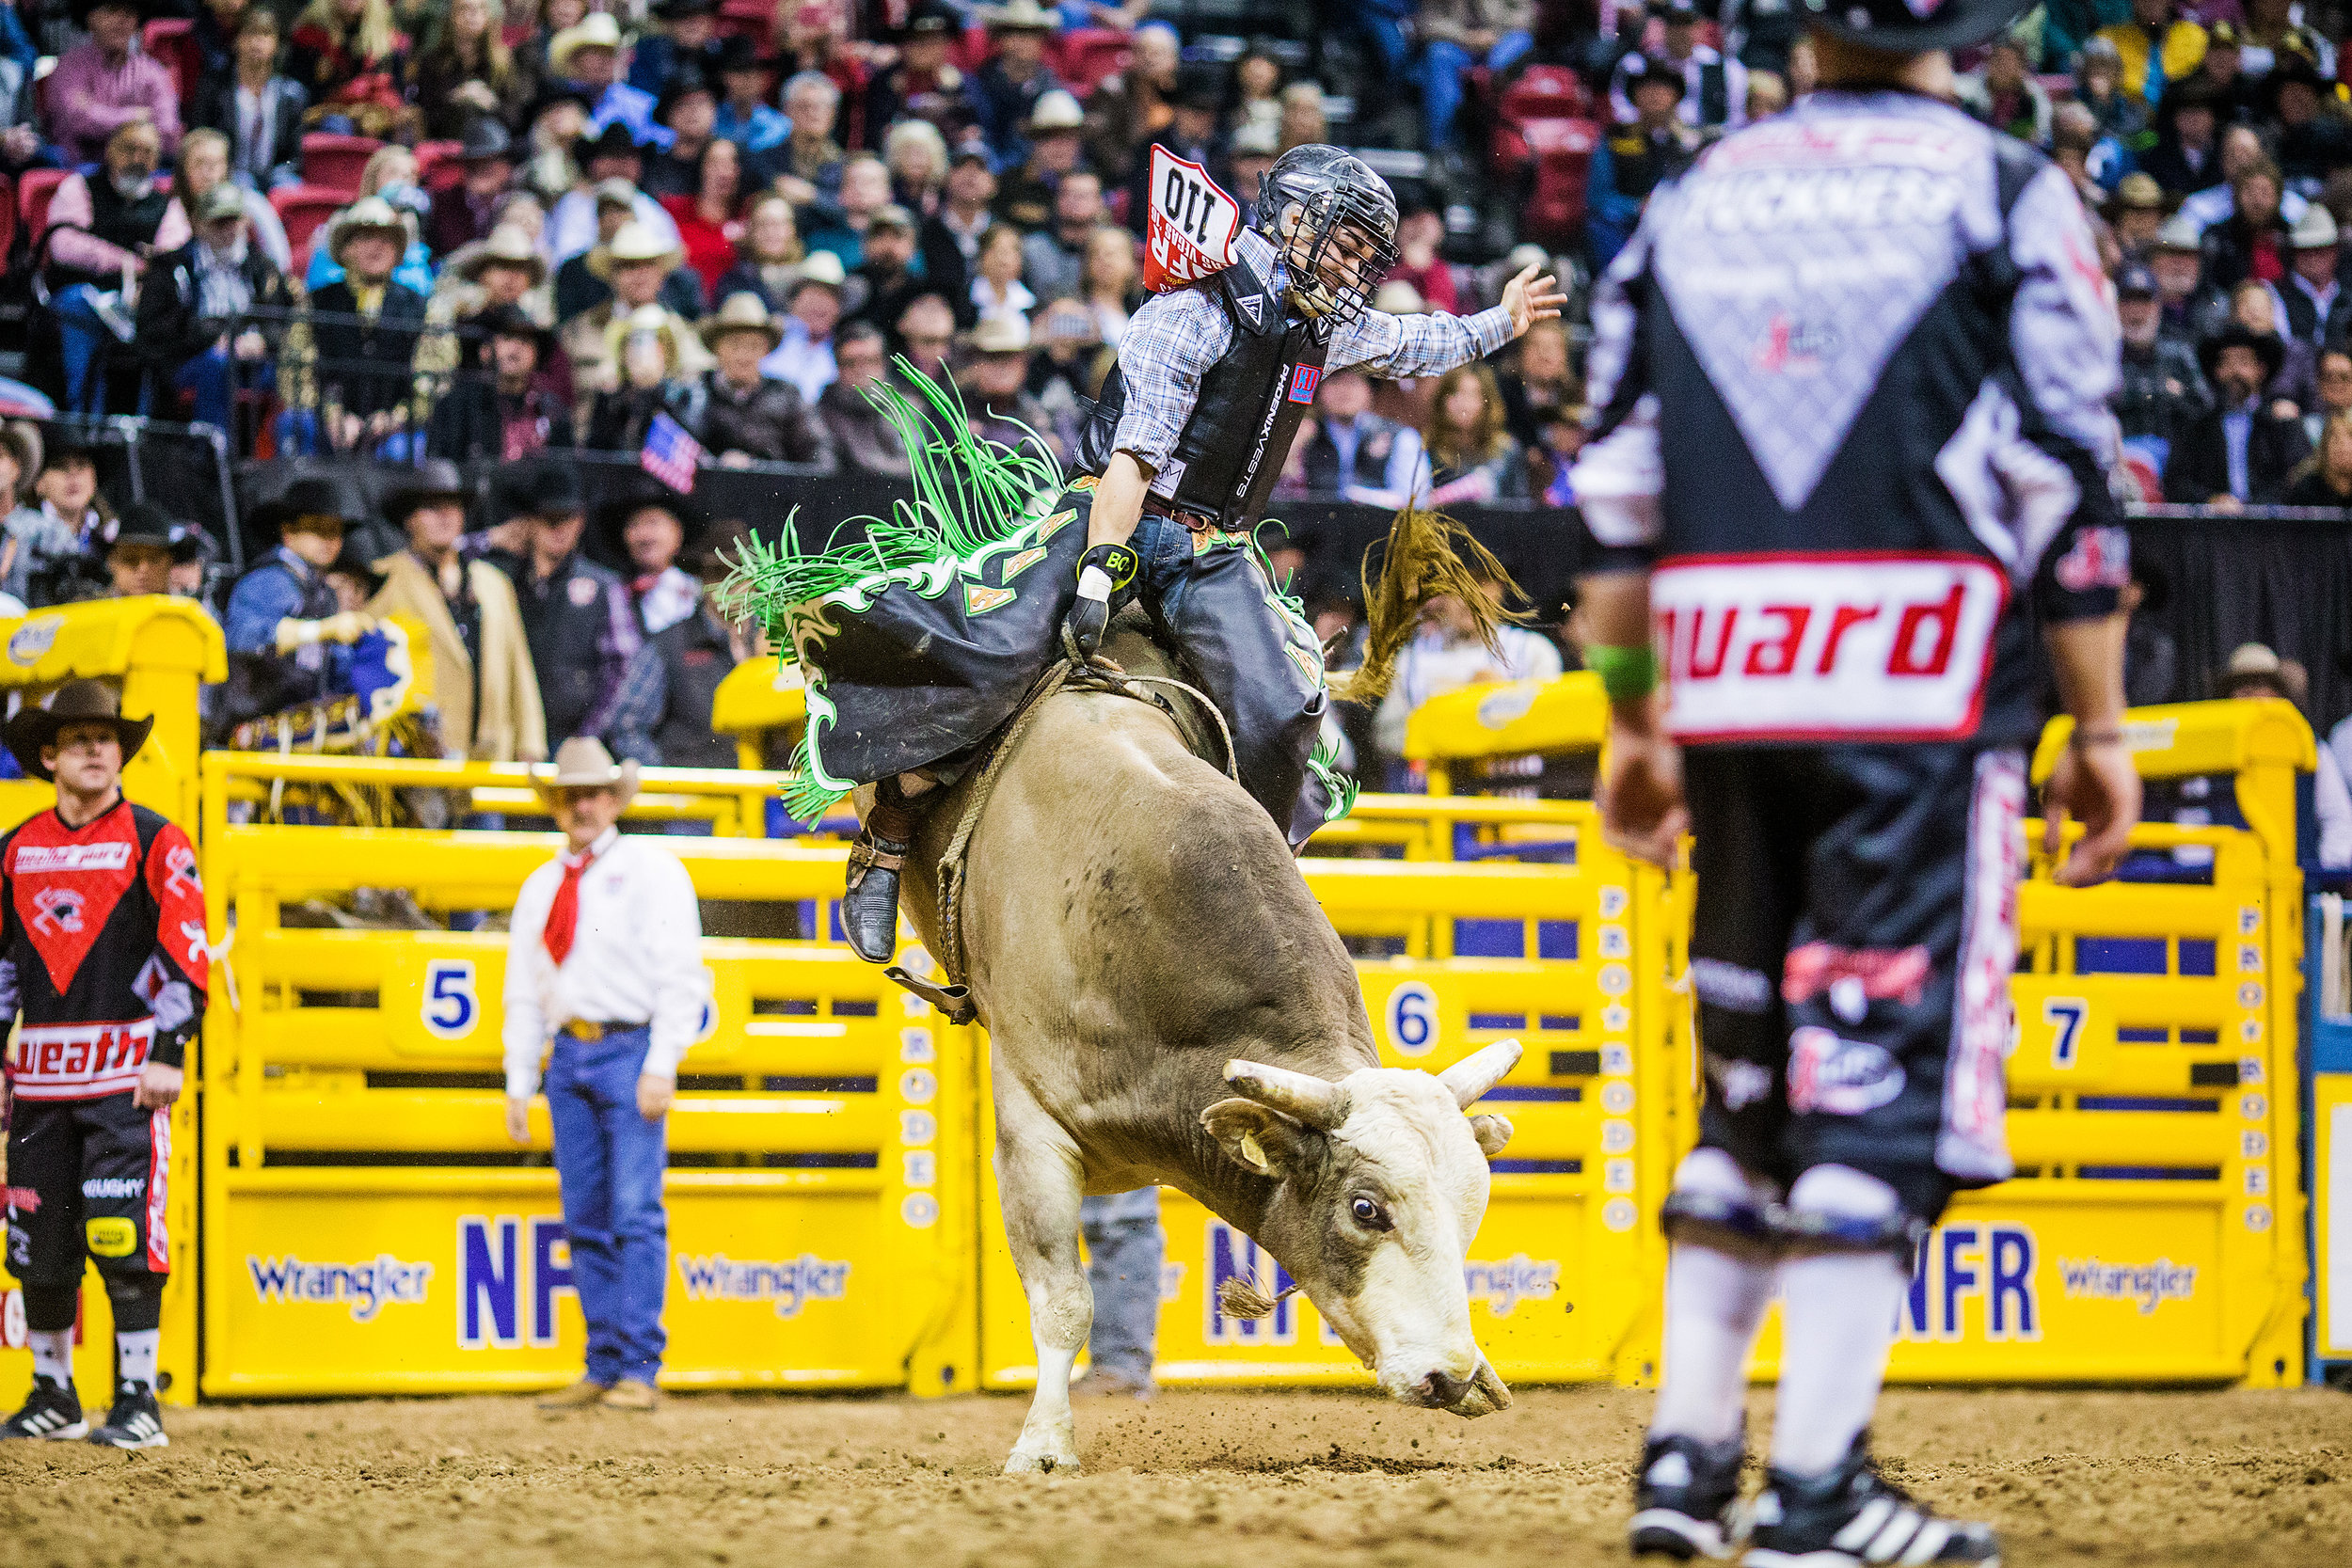 Rostoscyj on Andrews Monkey Punch at the 2016 Nationals Finals Rodeo where he split the Round 7 win.